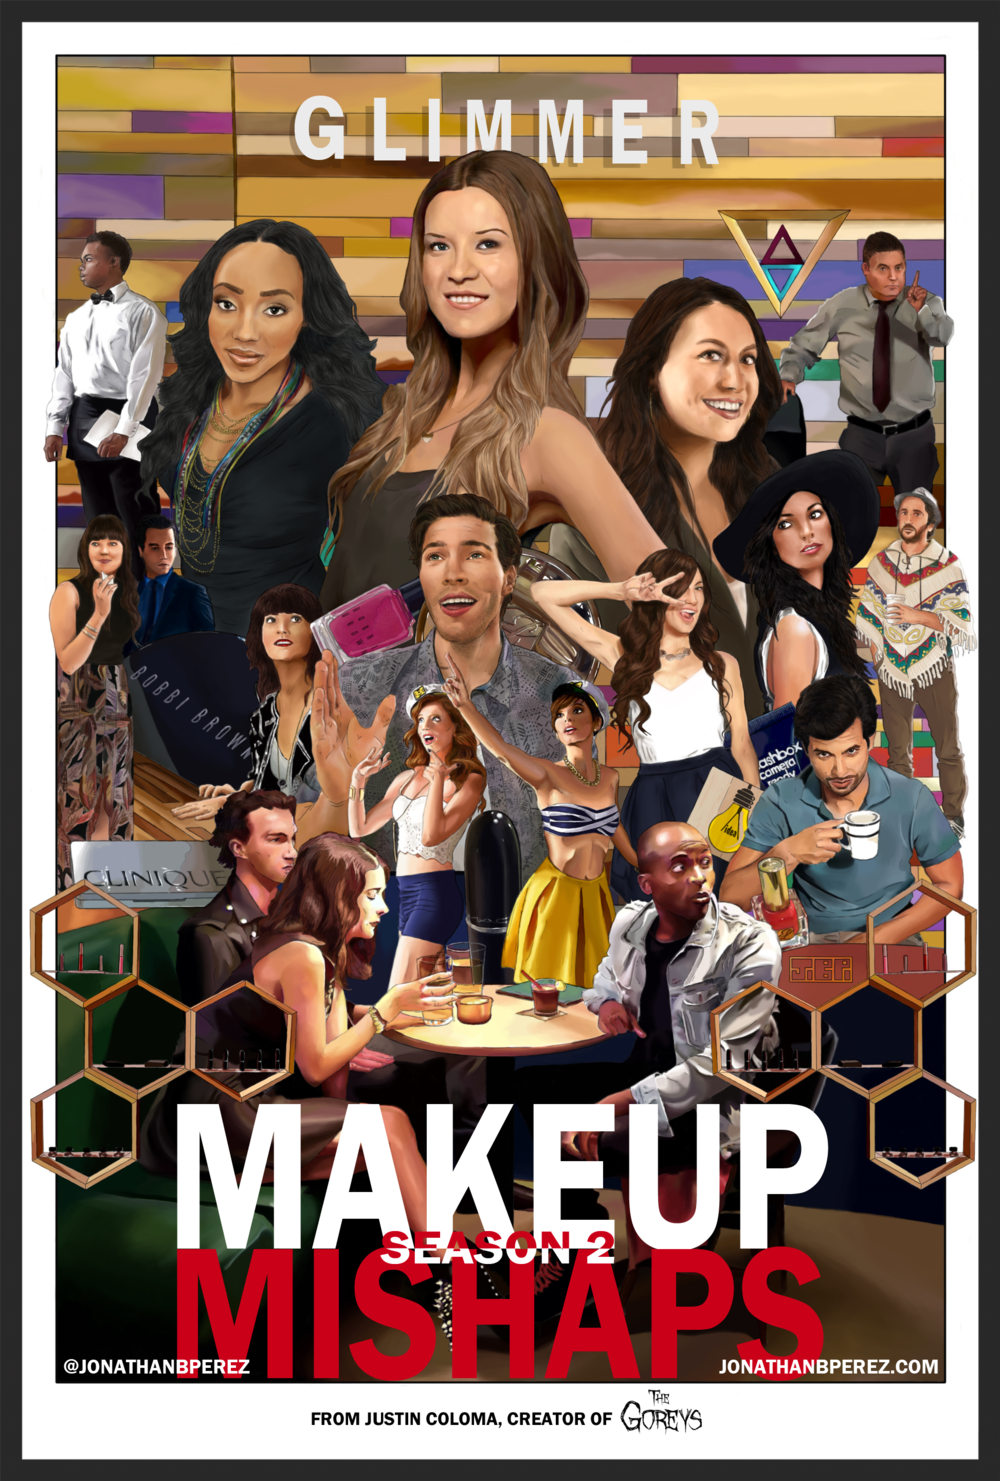 Poster for the new season of Makeup Mishaps, Produced by Estee Lauder & ILoveMakeup, Written and Directed by Justin Coloma, and Starring Meghan Rienks, Sharifa Oliver, Sarah Cortez, Constanza Palavecino, Kimberly Guevera, Trey Baxter, Alejandro Sandoval, Javier Ronceros, Emma Blyth, and Matt Smith.  Original artwork by Jonathan B Perez ©